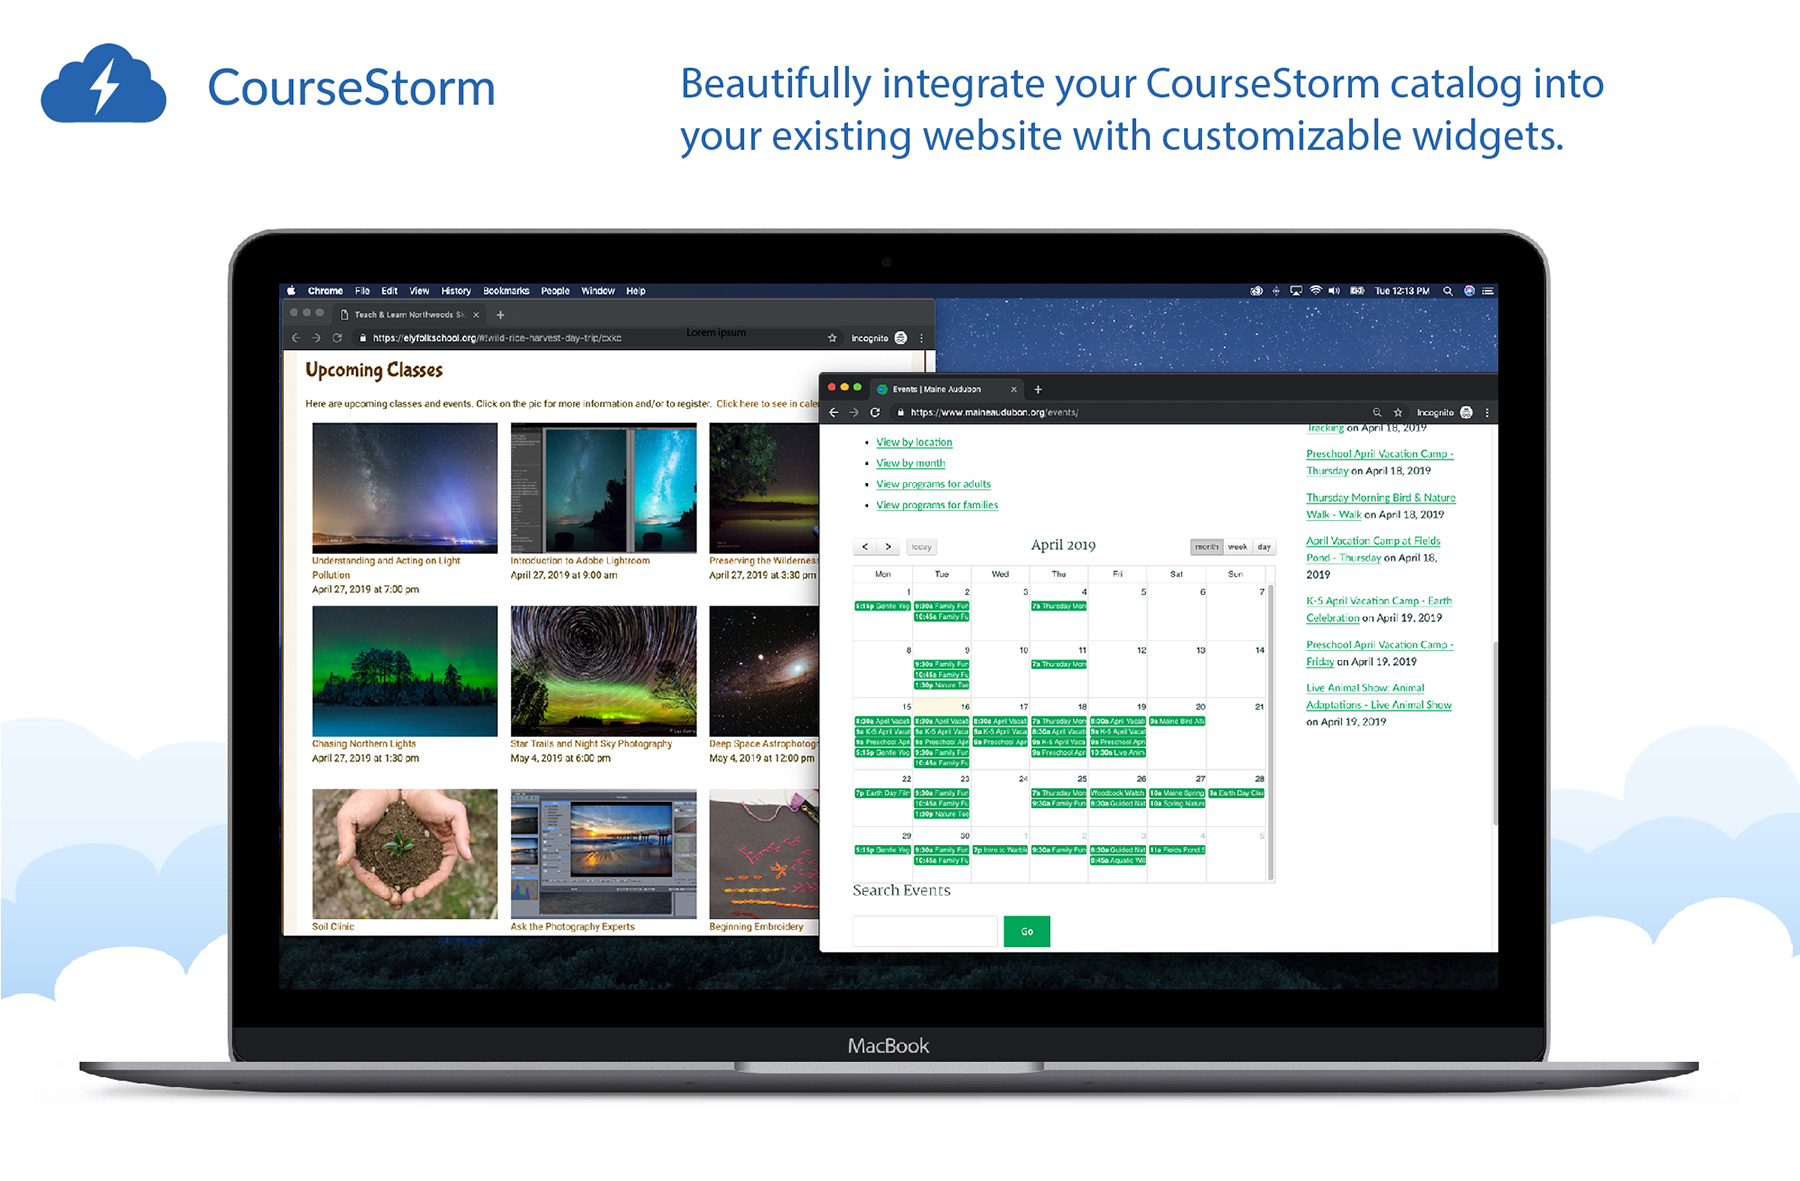 Beautifully integrate your CourseStorm catalog into your existing website with our customizable widgets.